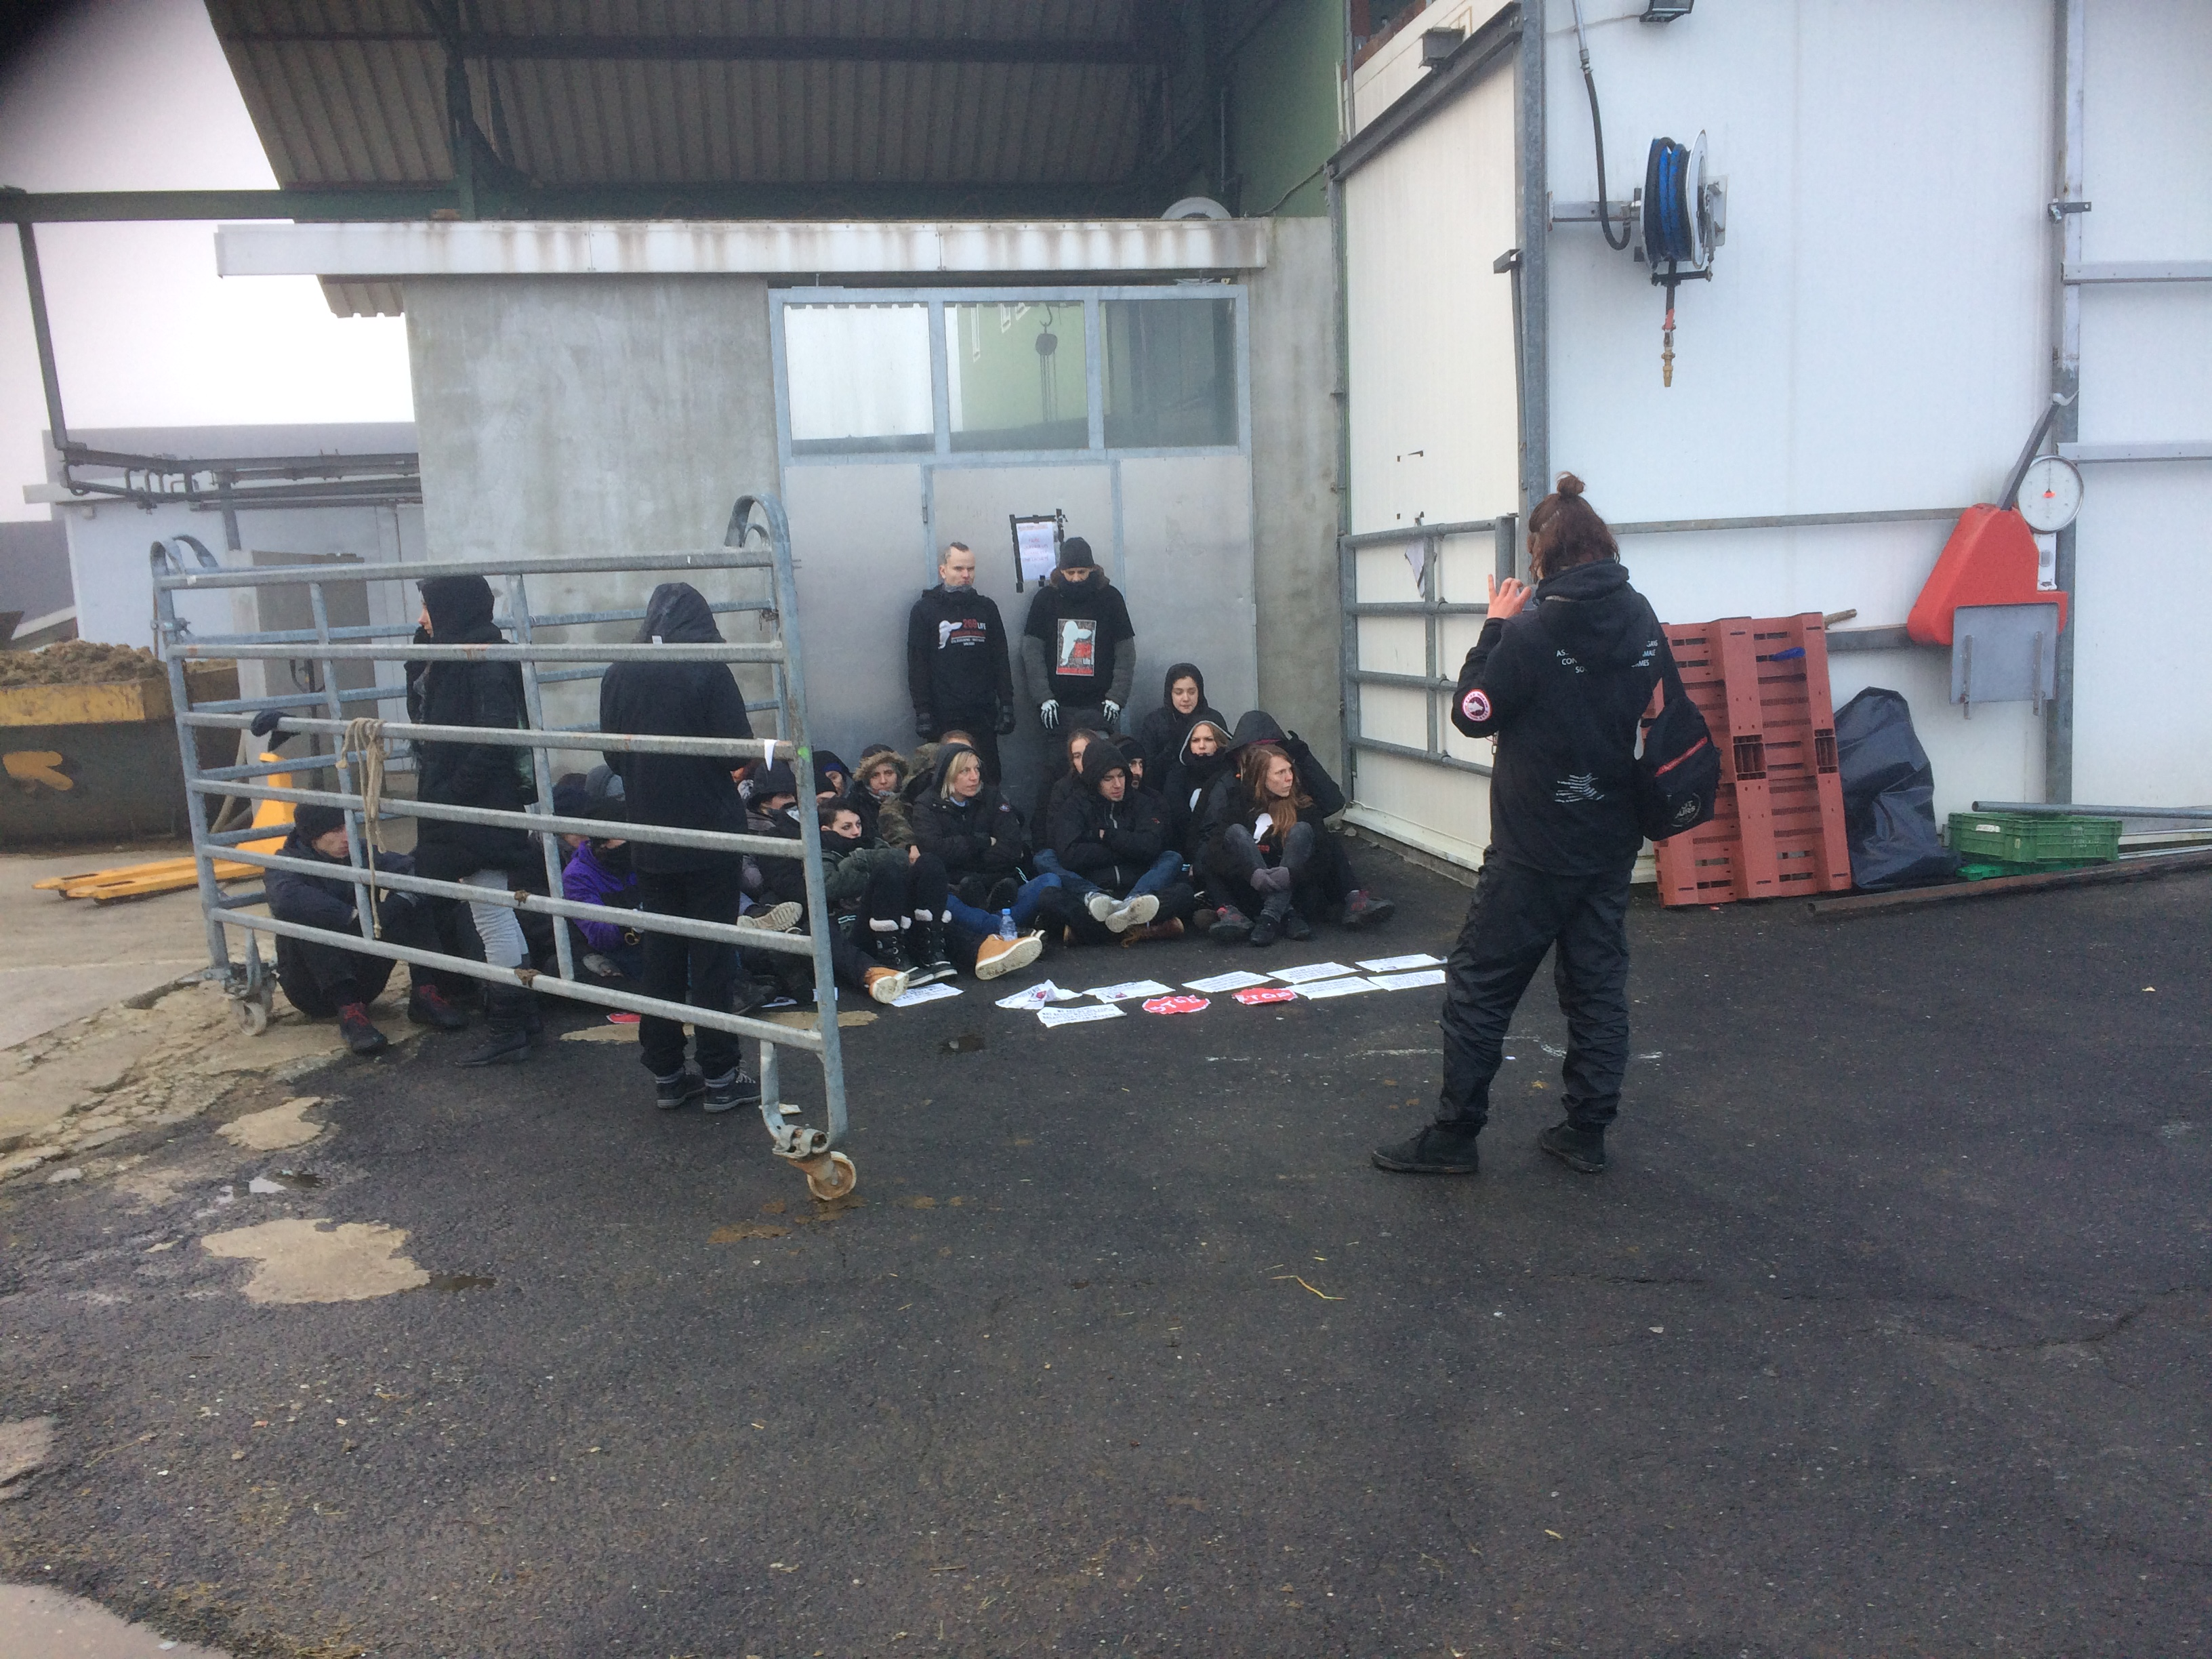 Les militants de l'association 269Life Libération Animale devant l'abattoir de Vich (VD).